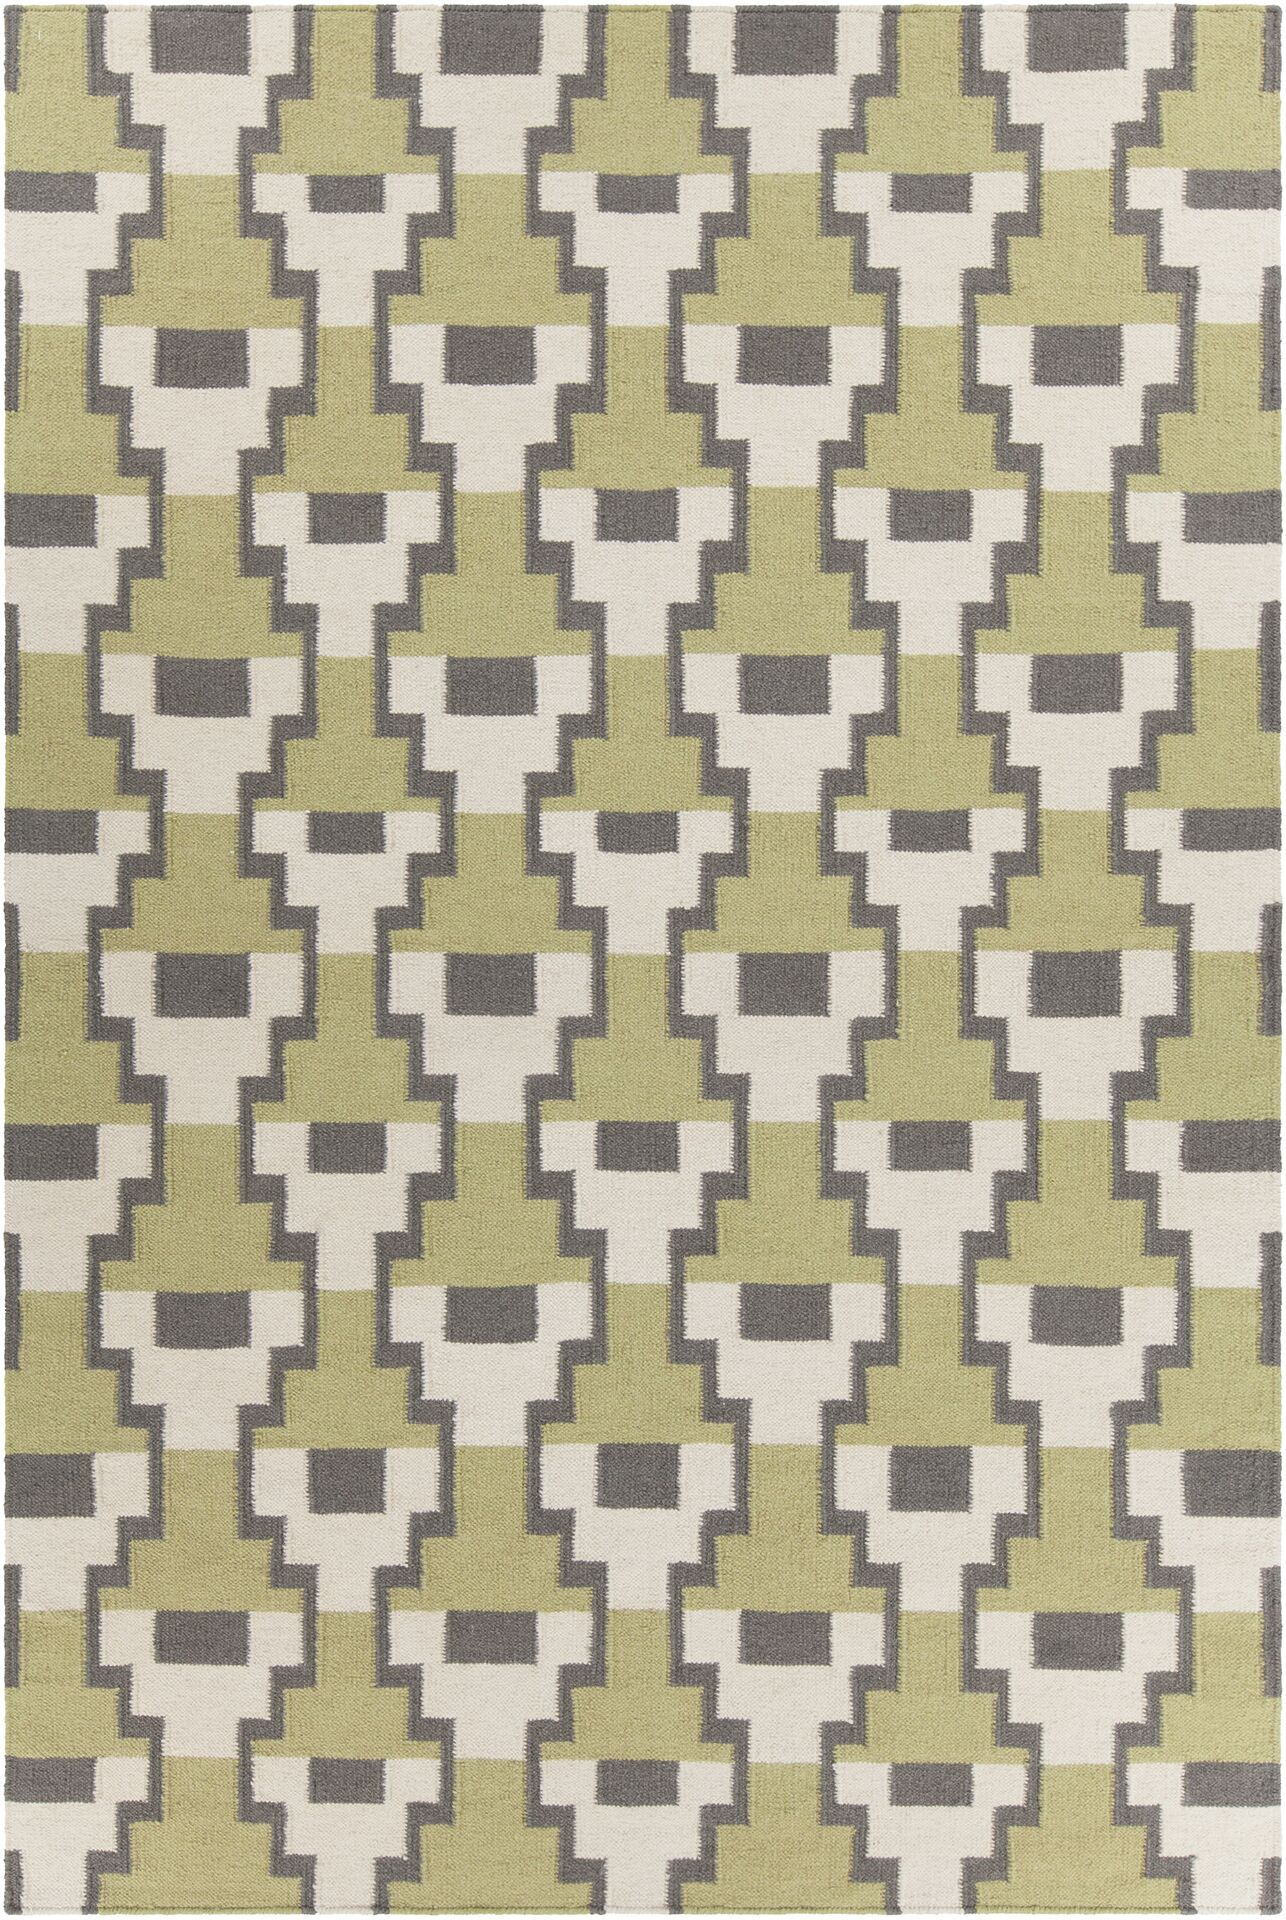 Charlene Textured Contemporary Green Area Rug Rug Size: 5' x 7'6